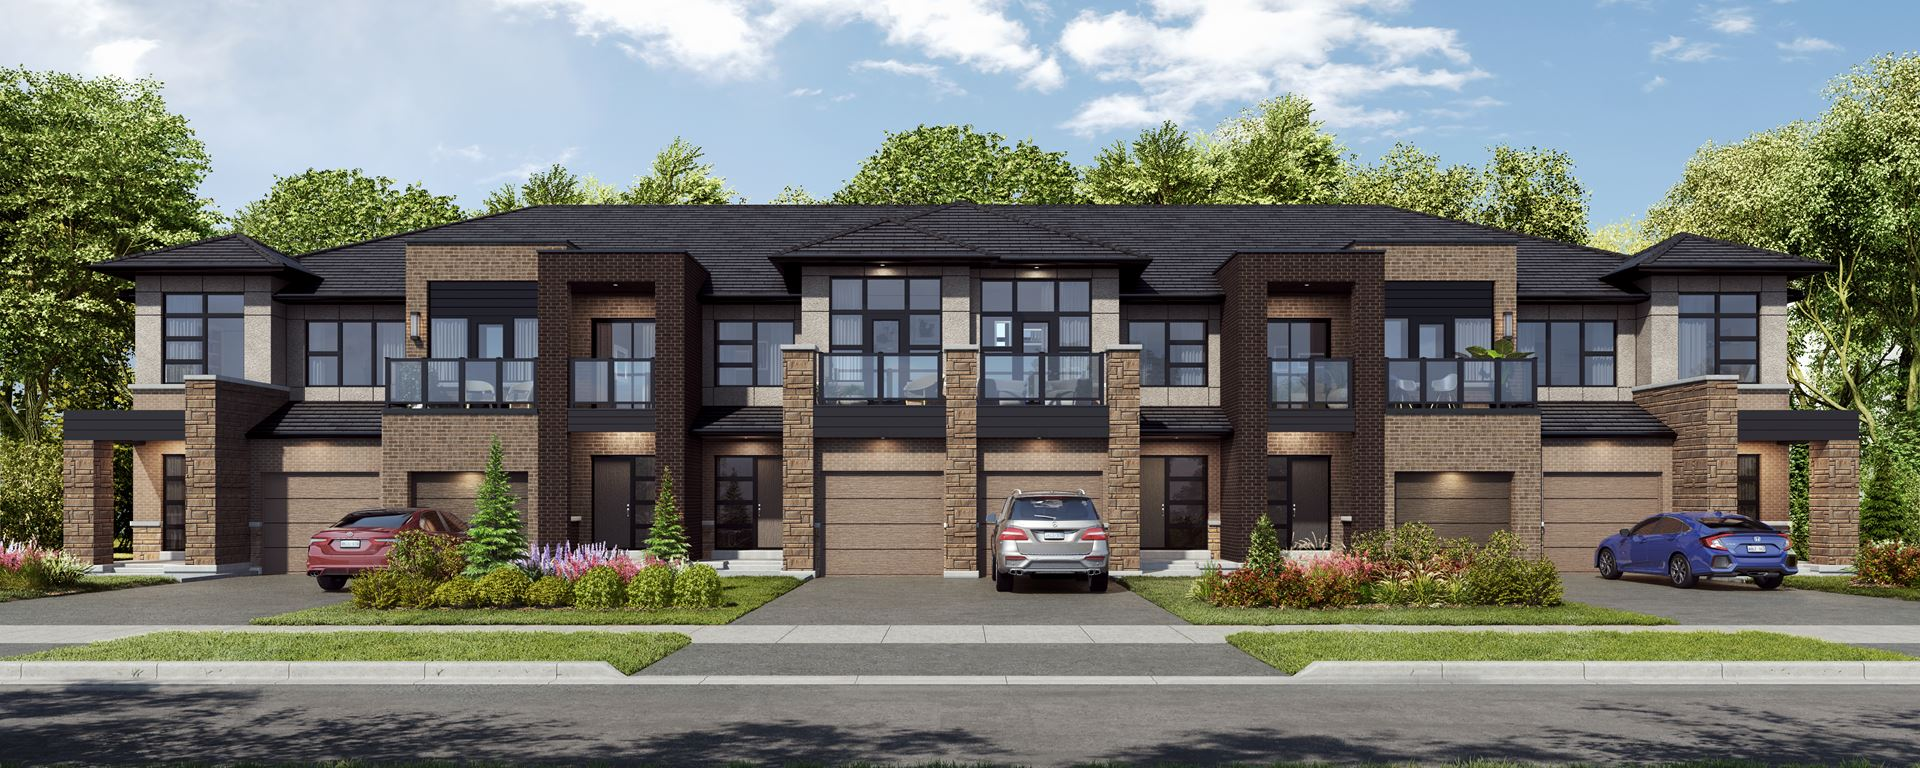 Rendering of Union Village townhome elevation streetscape.